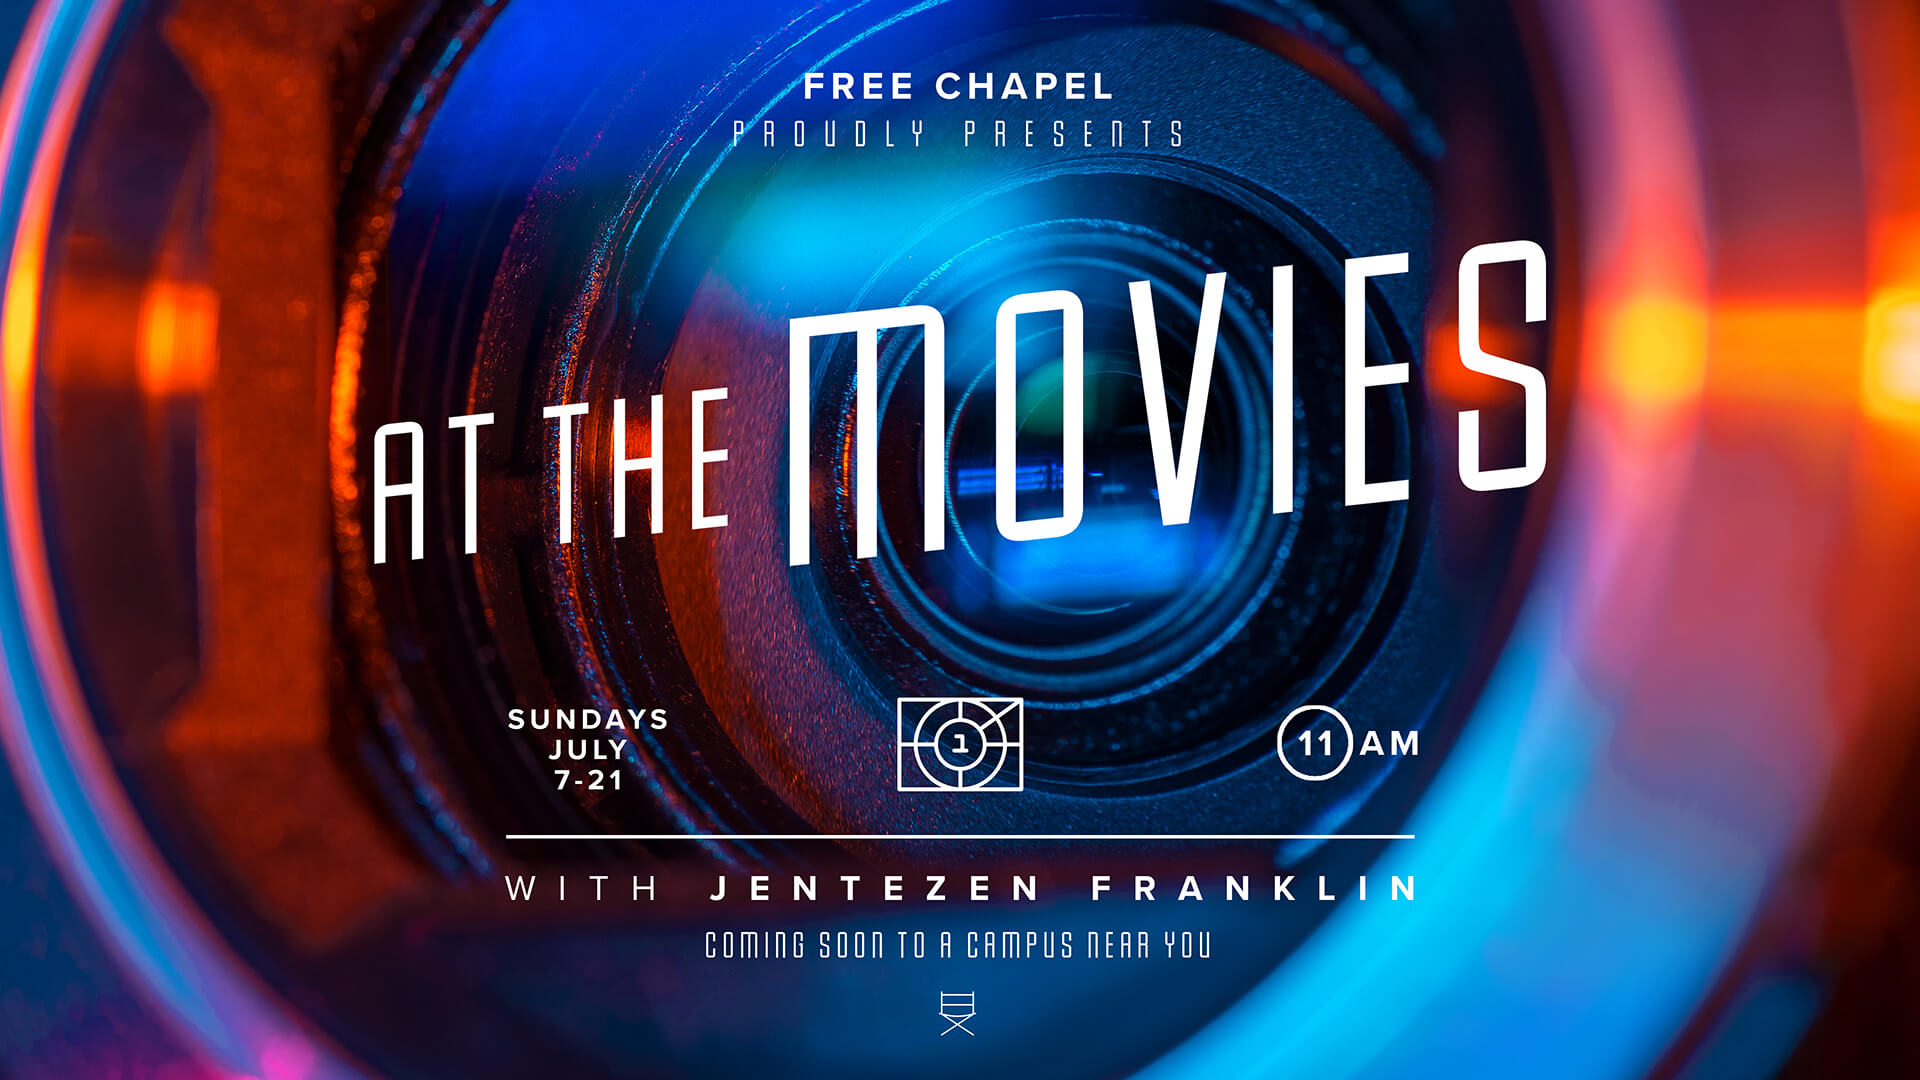 At The Movies at the Midtown campus